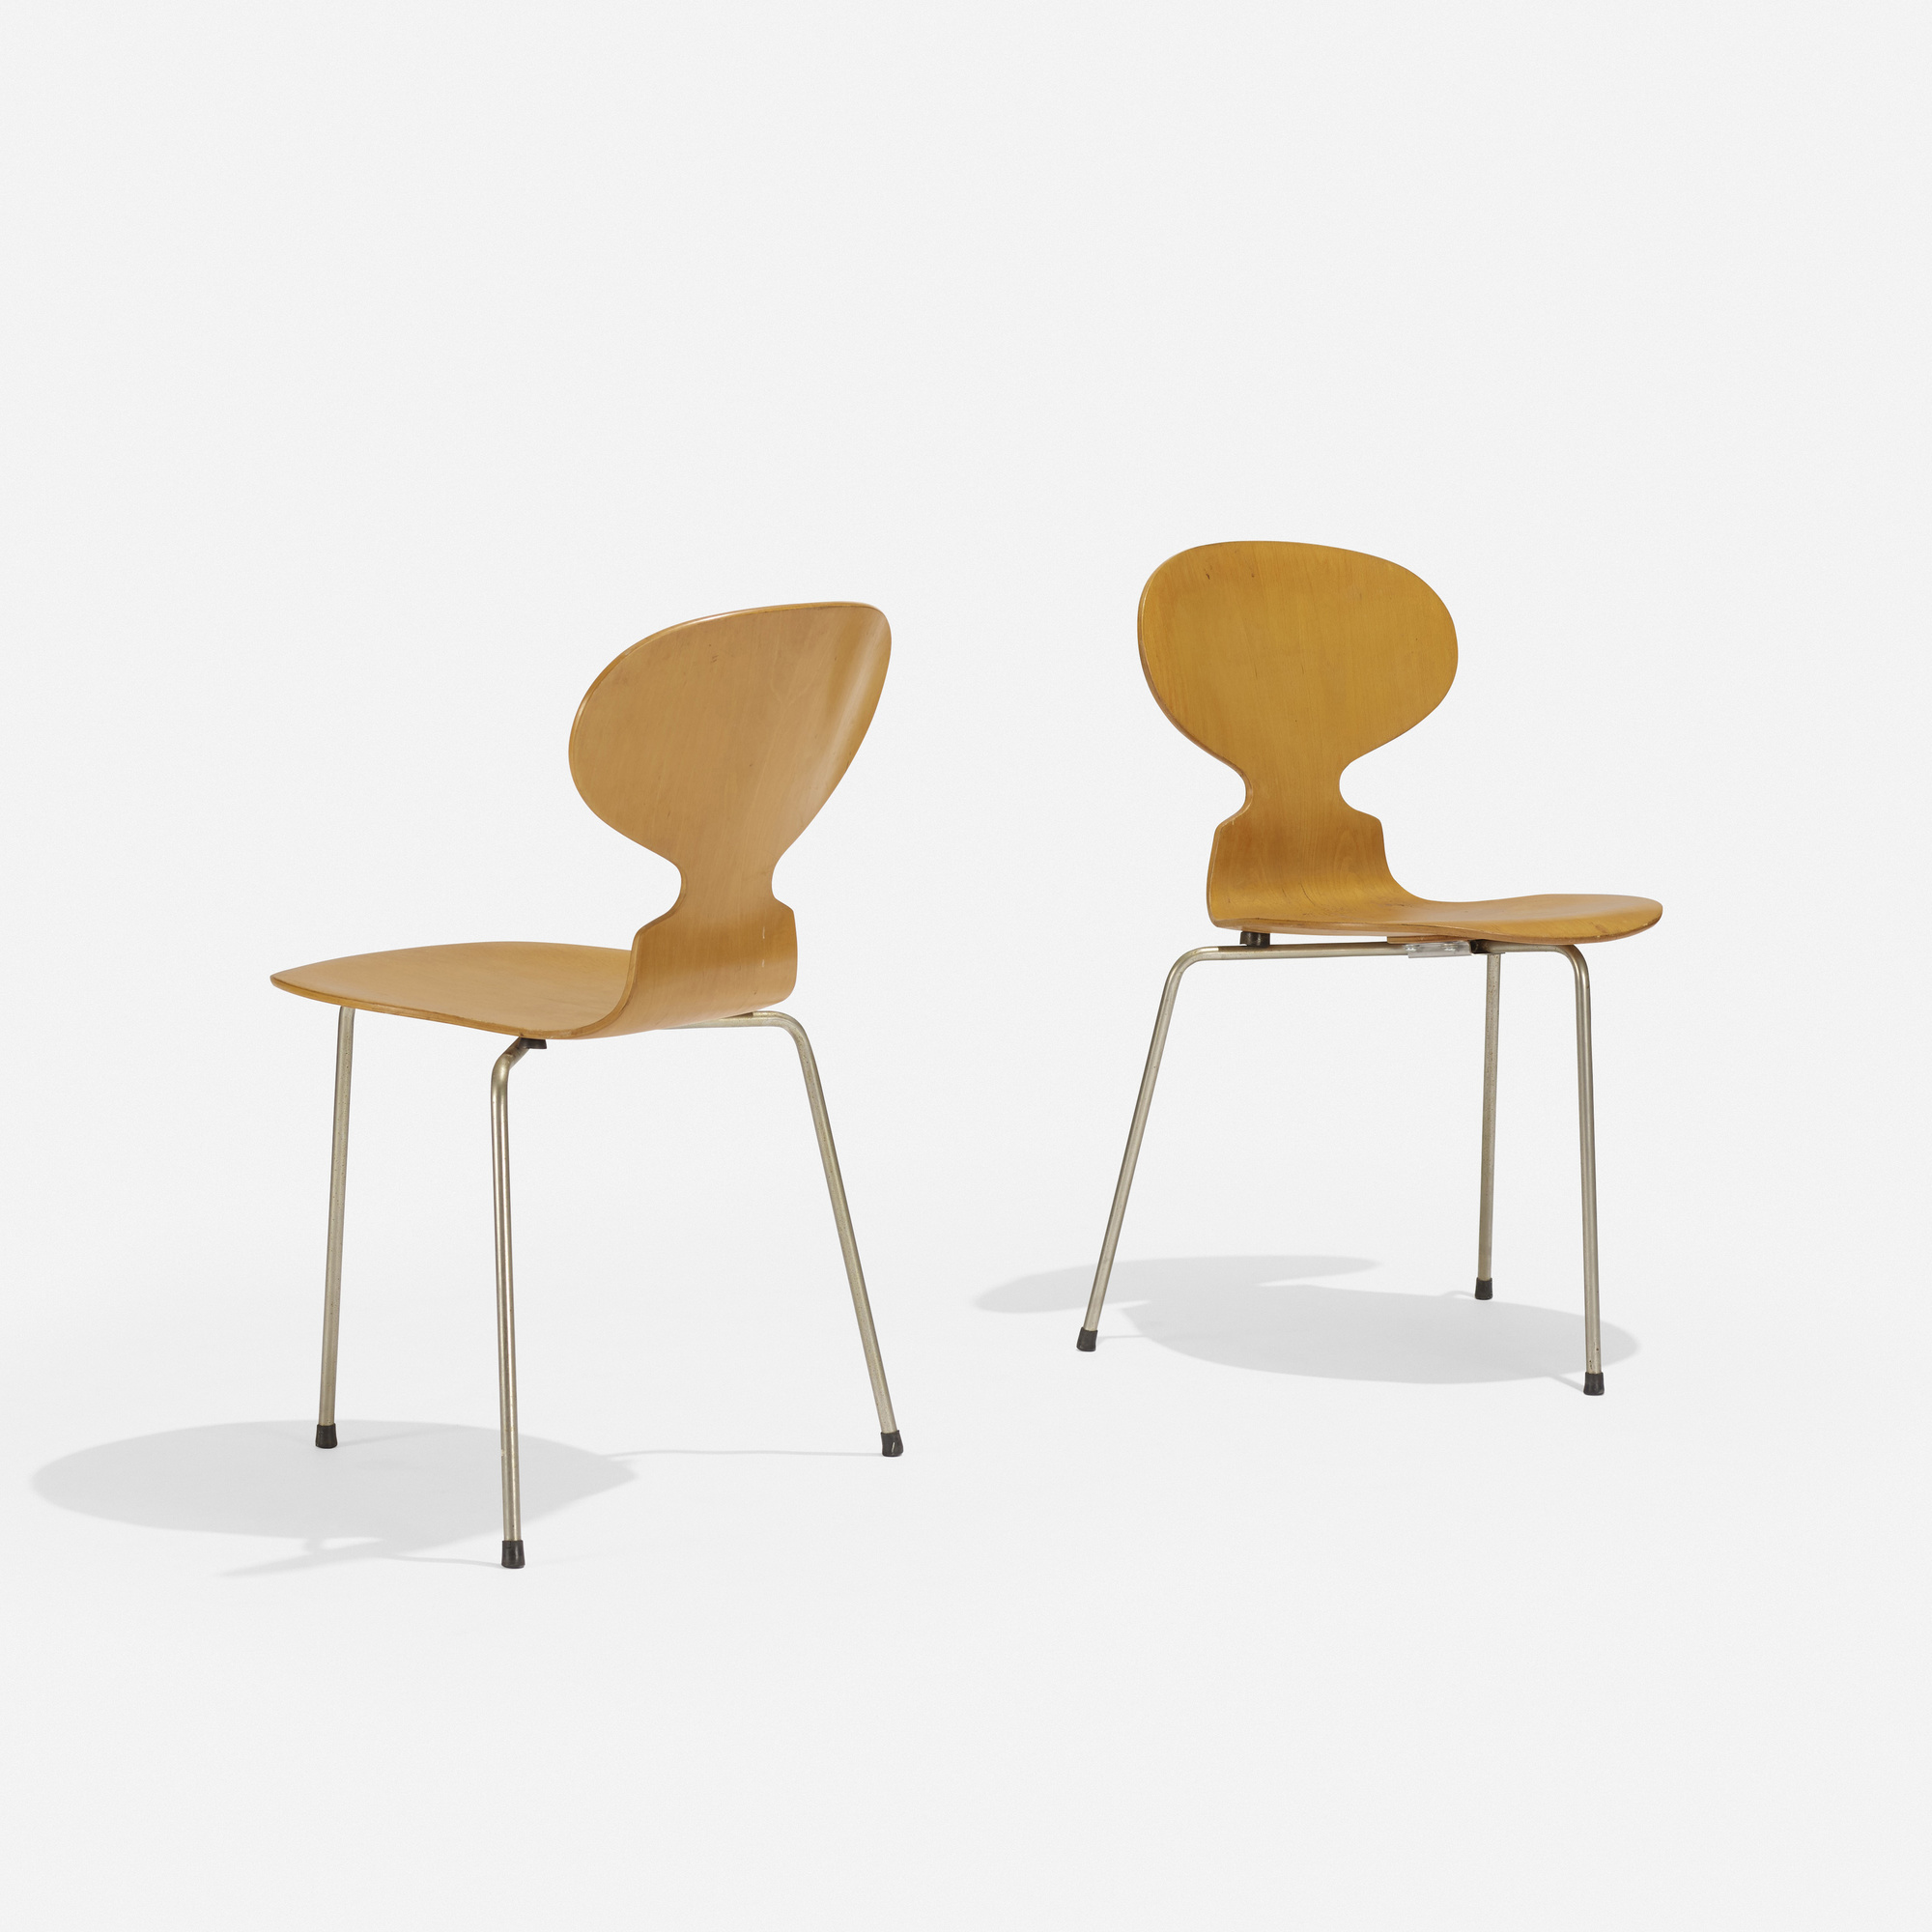 312 Arne Jacobsen Ant Chairs Pair The Boyd Collection Iii